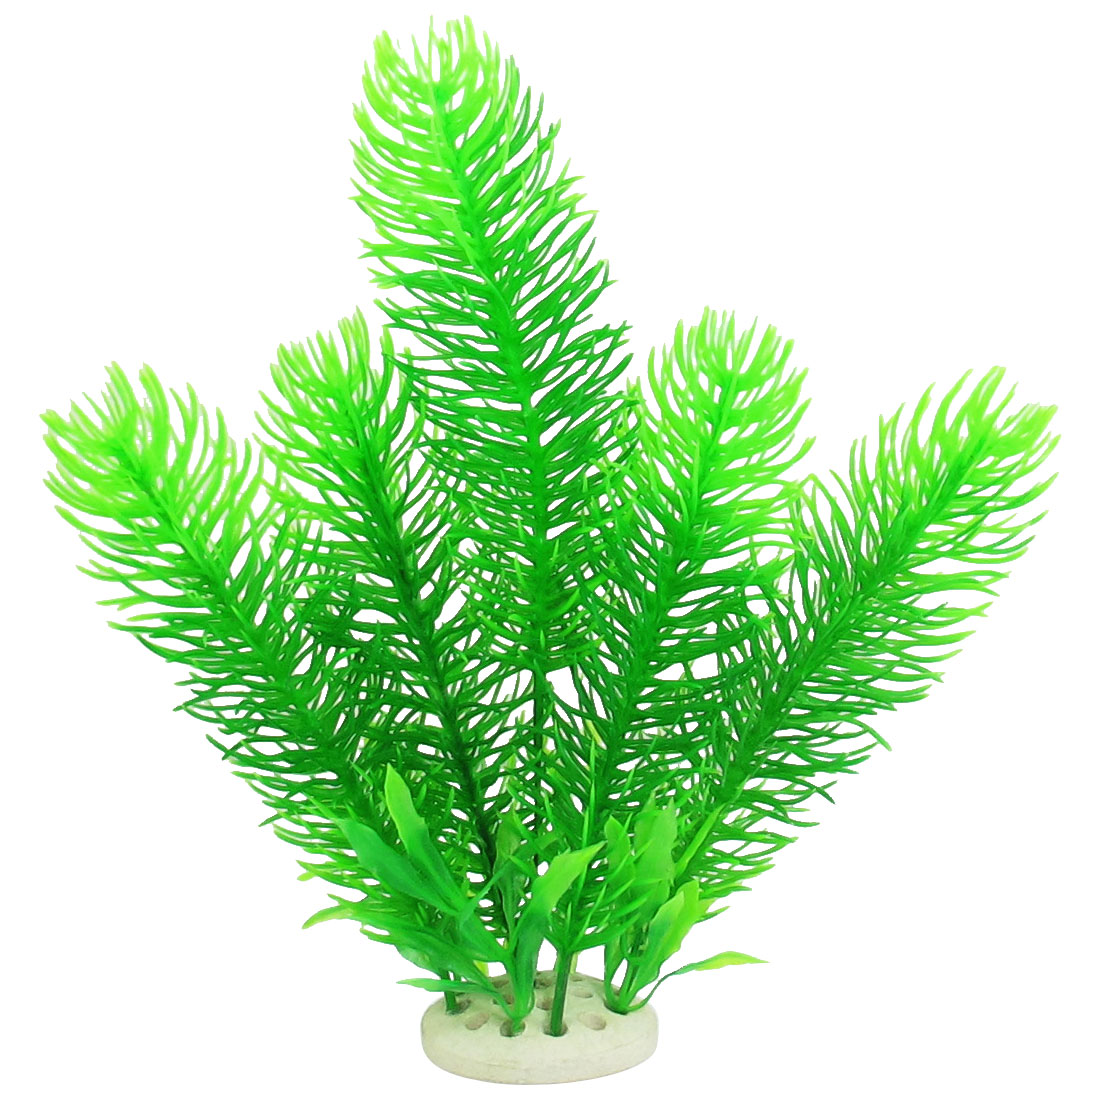 "9.4"" x 7.9"" Green Plastic Plant Fish Tank Landscape Decoration"